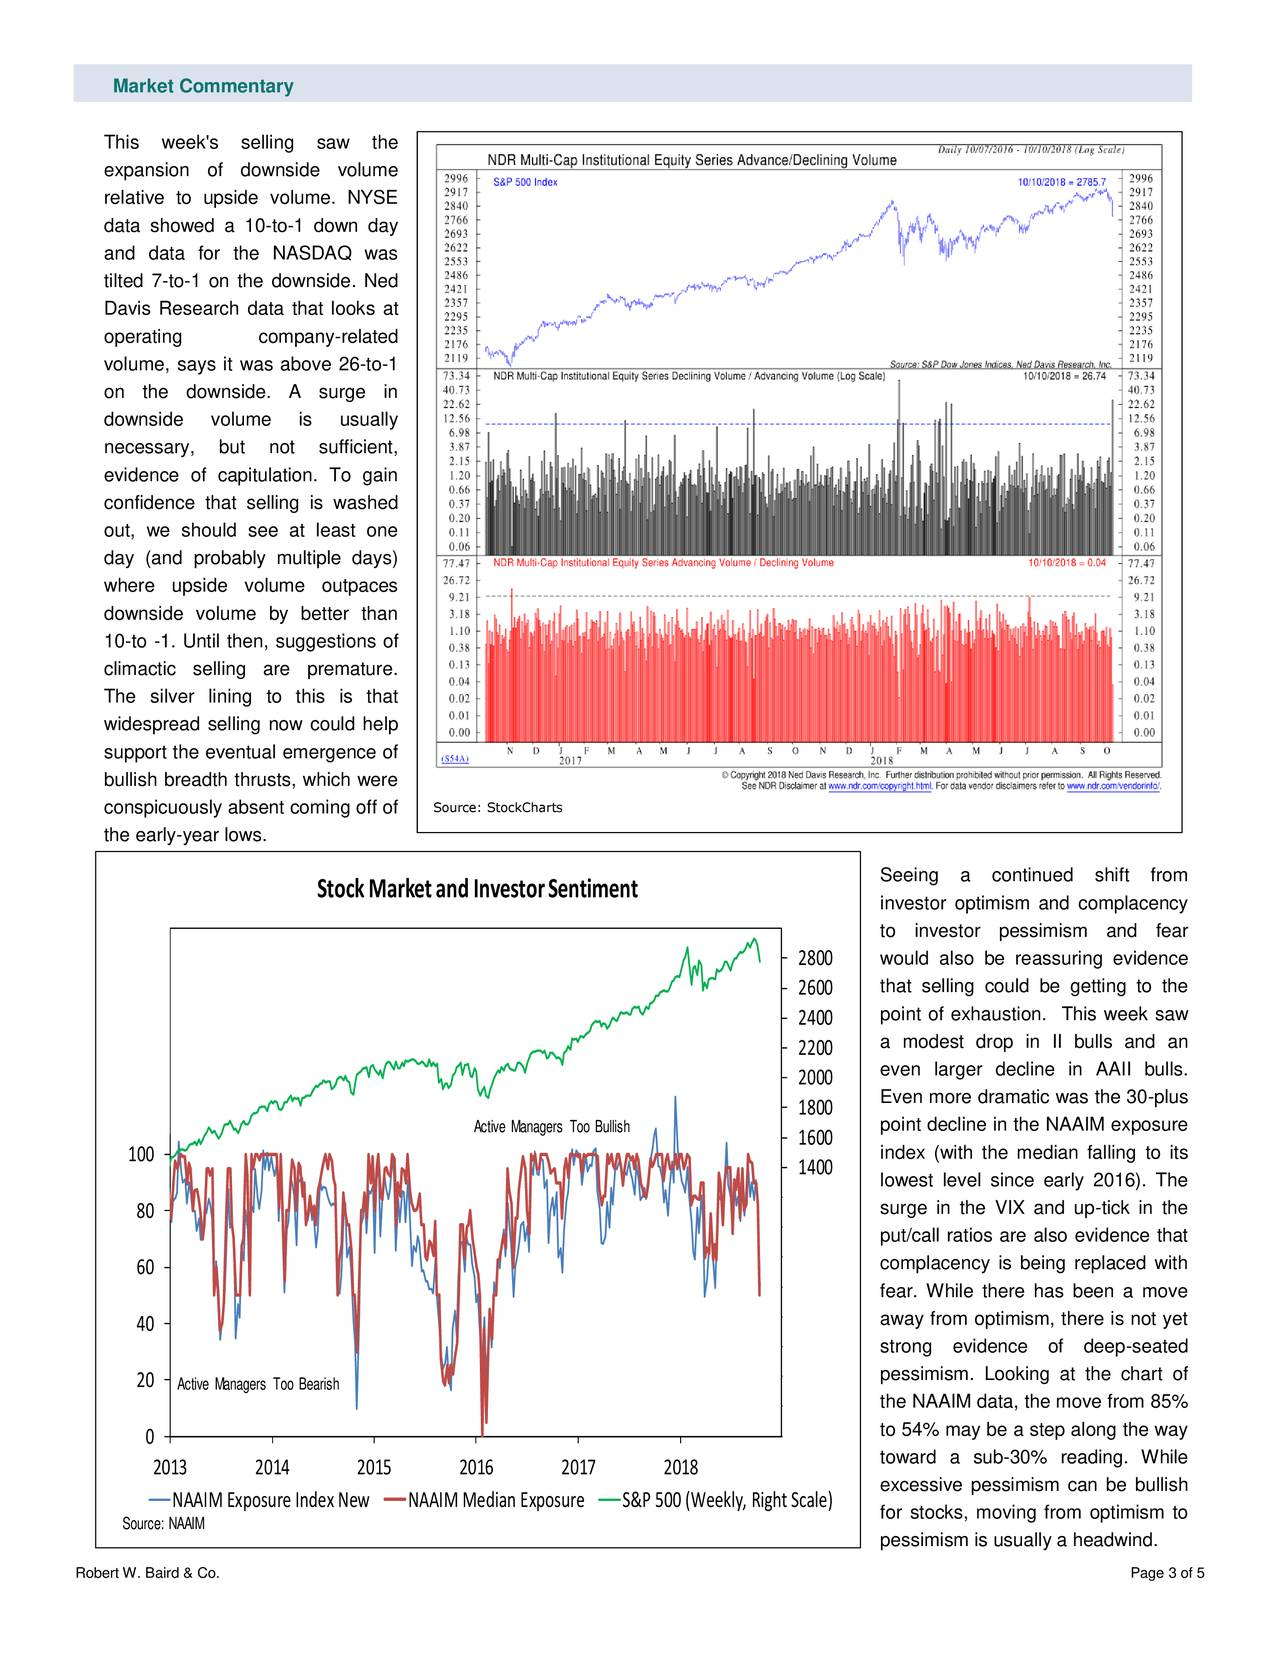 This week's selling saw the expansion of downside volume relative to upside volume. NYSE data showed a 10-to-1 down day and data for the NASDAQ was tilted 7-to-1 on the downside. Ned Davis Research data that looks at operating company-related volume, says it was above 26-to-1 on the downside. A surge in downside volume is usually necessary, but not sufficient, evidence of capitulation. To gain confidence that selling is washed out, we should see at least one day (and probably multiple days) where upside volume outpaces downside volume by better than 10-to -1. Until then, suggestions of climactic selling are premature. The silver lining to this is that widespread selling now could help support the eventual emergence of bullish breadth thrusts, which were conspicuously absent coming off of Source: StockCharts the early-year lows. Seeing a continued shift from StockMarket and InvestorSentiment investor optimism and complacency 180 to investor pessimism and fear 2800 would also be reassuring evidence 160 2600 that selling could be getting to the 2400 point of exhaustion. This week saw 140 2200 a modest drop in II bulls and an 2000 even larger decline in AAII bulls. 120 Even more dramatic was the 30-plus 1800 Active Manaerso Bullish 1600 point decline in the NAAIM exposure 100 index (with the median falling to its 1400 lowest level since early 2016). The 1200 80 surge in the VIX and up-tick in the 1000 put/call ratios are also evidence that 800 60 complacency is being replaced with 600 fear. While there has been a move 400 away from optimism, there is not yet 40 200 strong evidence of deep-seated 0 pessimism. Looking at the chart of 20 Active Manerso Bearish -200 the NAAIM data, the move from 85% 0 -400 to 54% may be a step along the way toward a sub-30% reading. While 2013 2014 2015 2016 2017 2018 excessive pessimism can be bullish NAAIM Exposure Index NN eAAIM Median ExposuSr& eP 500 (Weekly, Right Scalefor stocks, moving from optimism to Source: NAAIM pessimism is usu